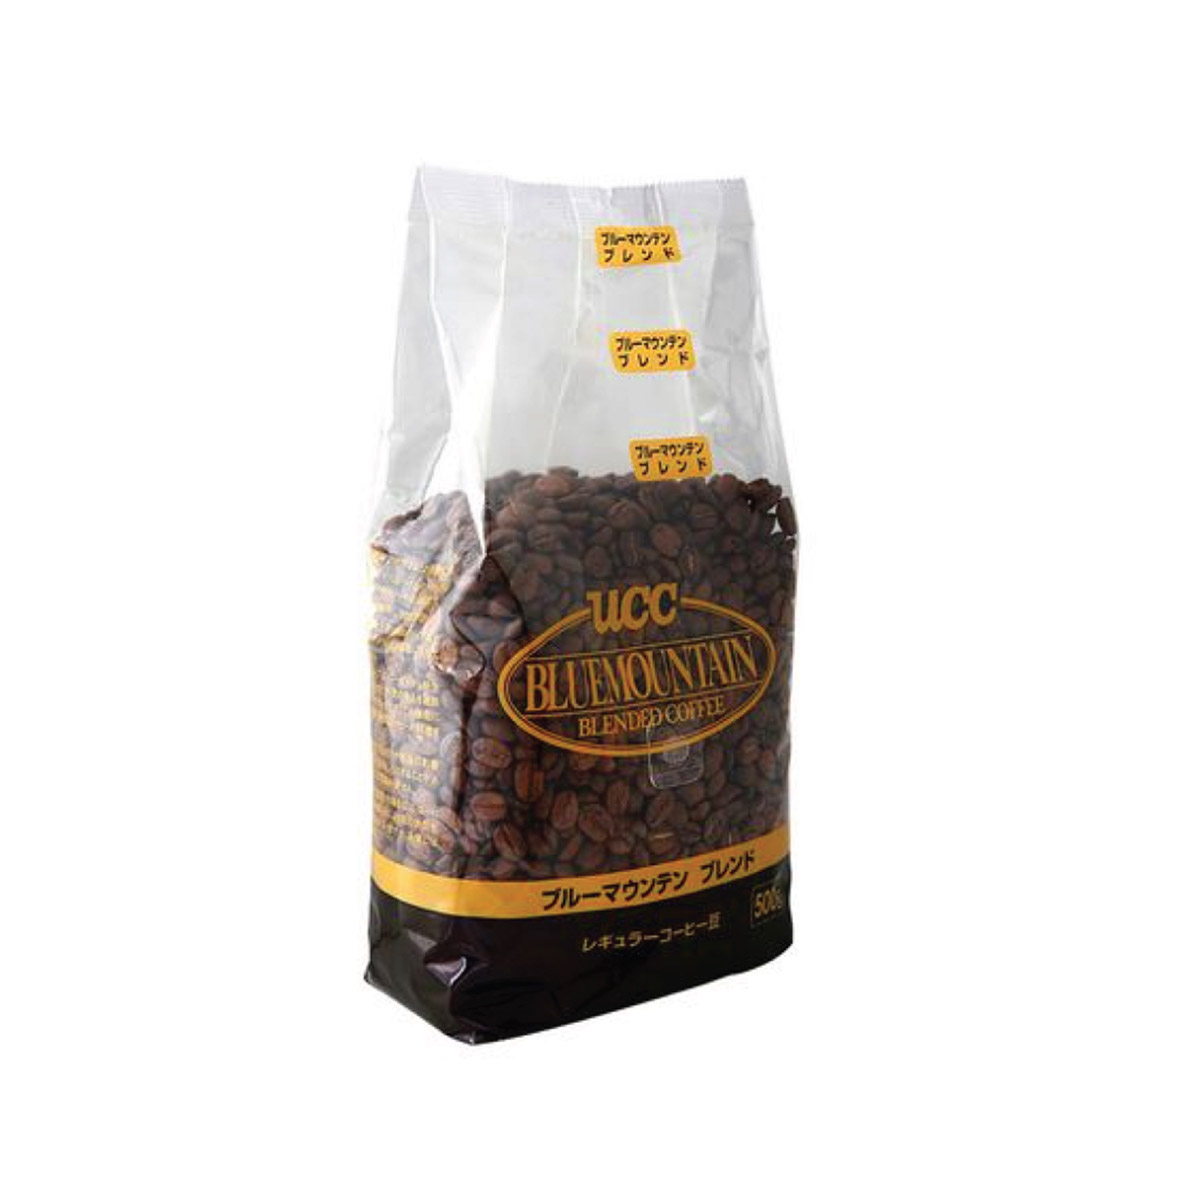 UCC Blue Mountain Blended Coffee